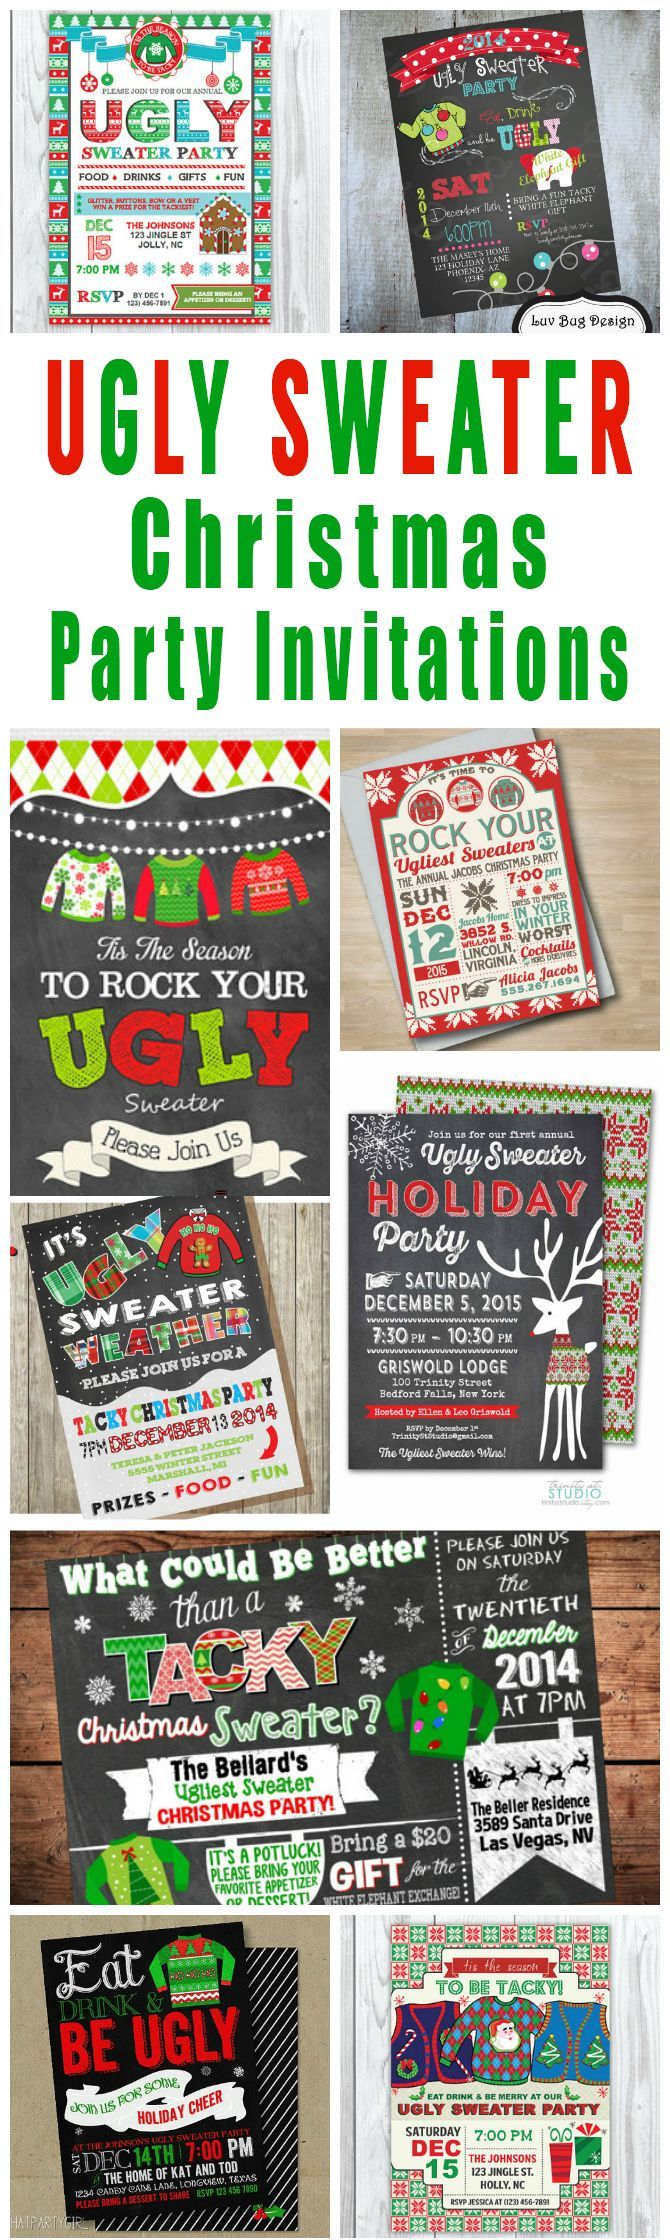 Ugly Christmas Sweater Party Invitations | Party printables, Ugliest ...